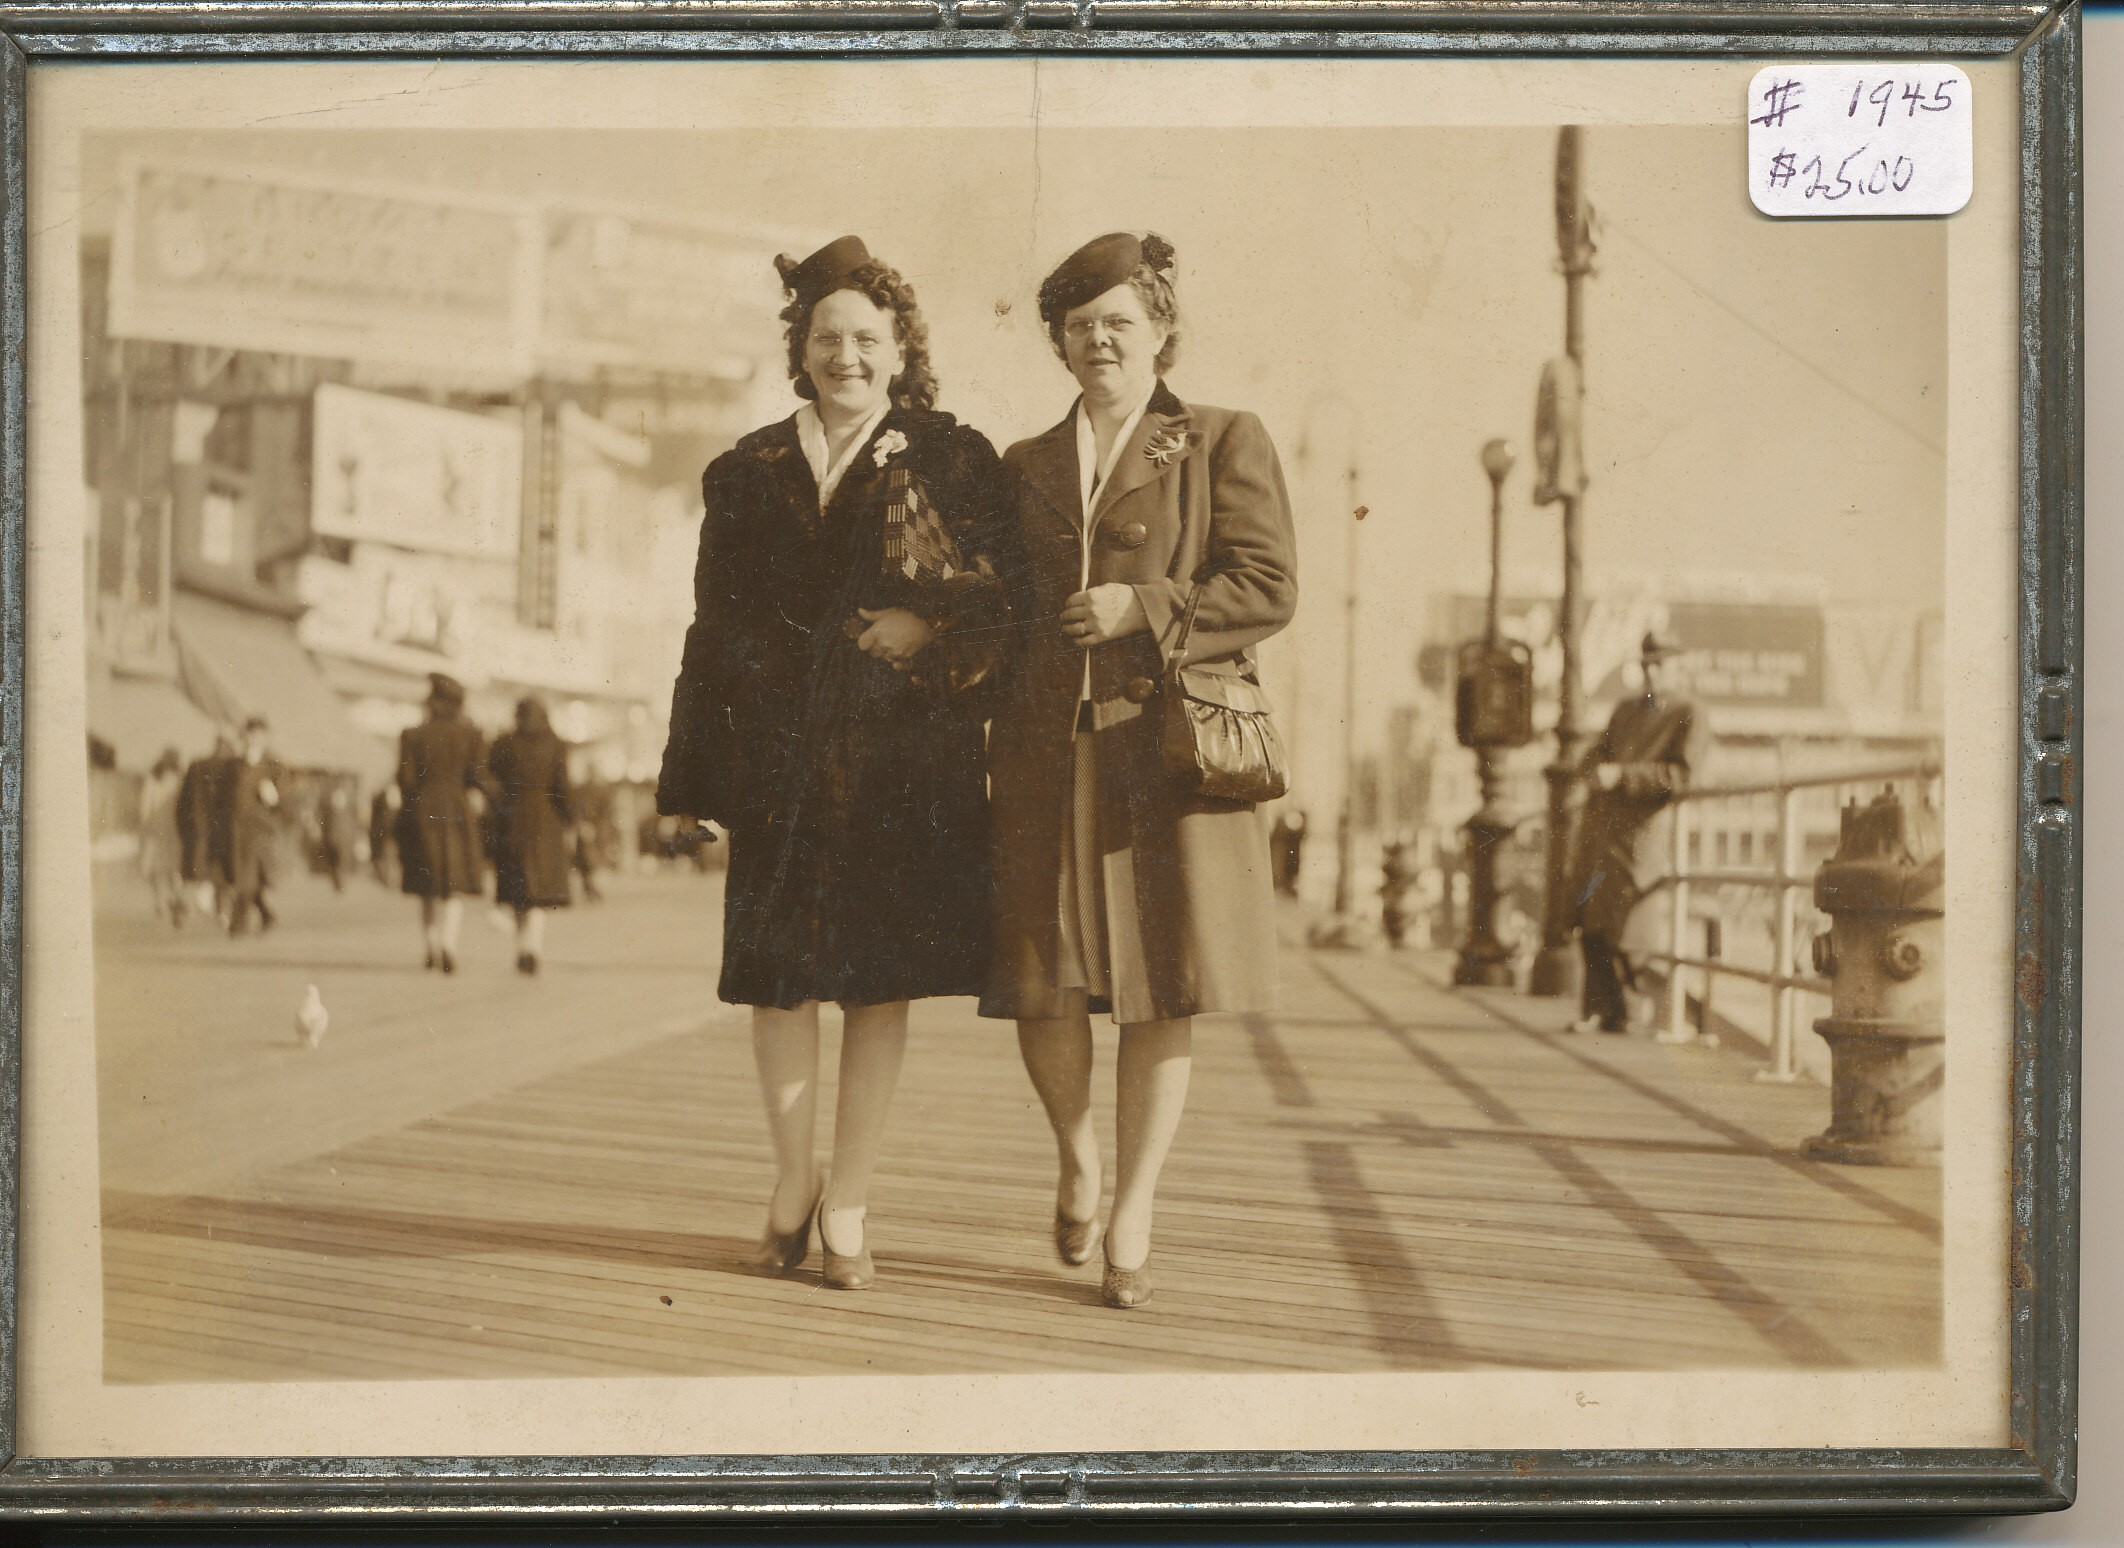 1945 Atlantic City-Clothing Workers Convention Picture